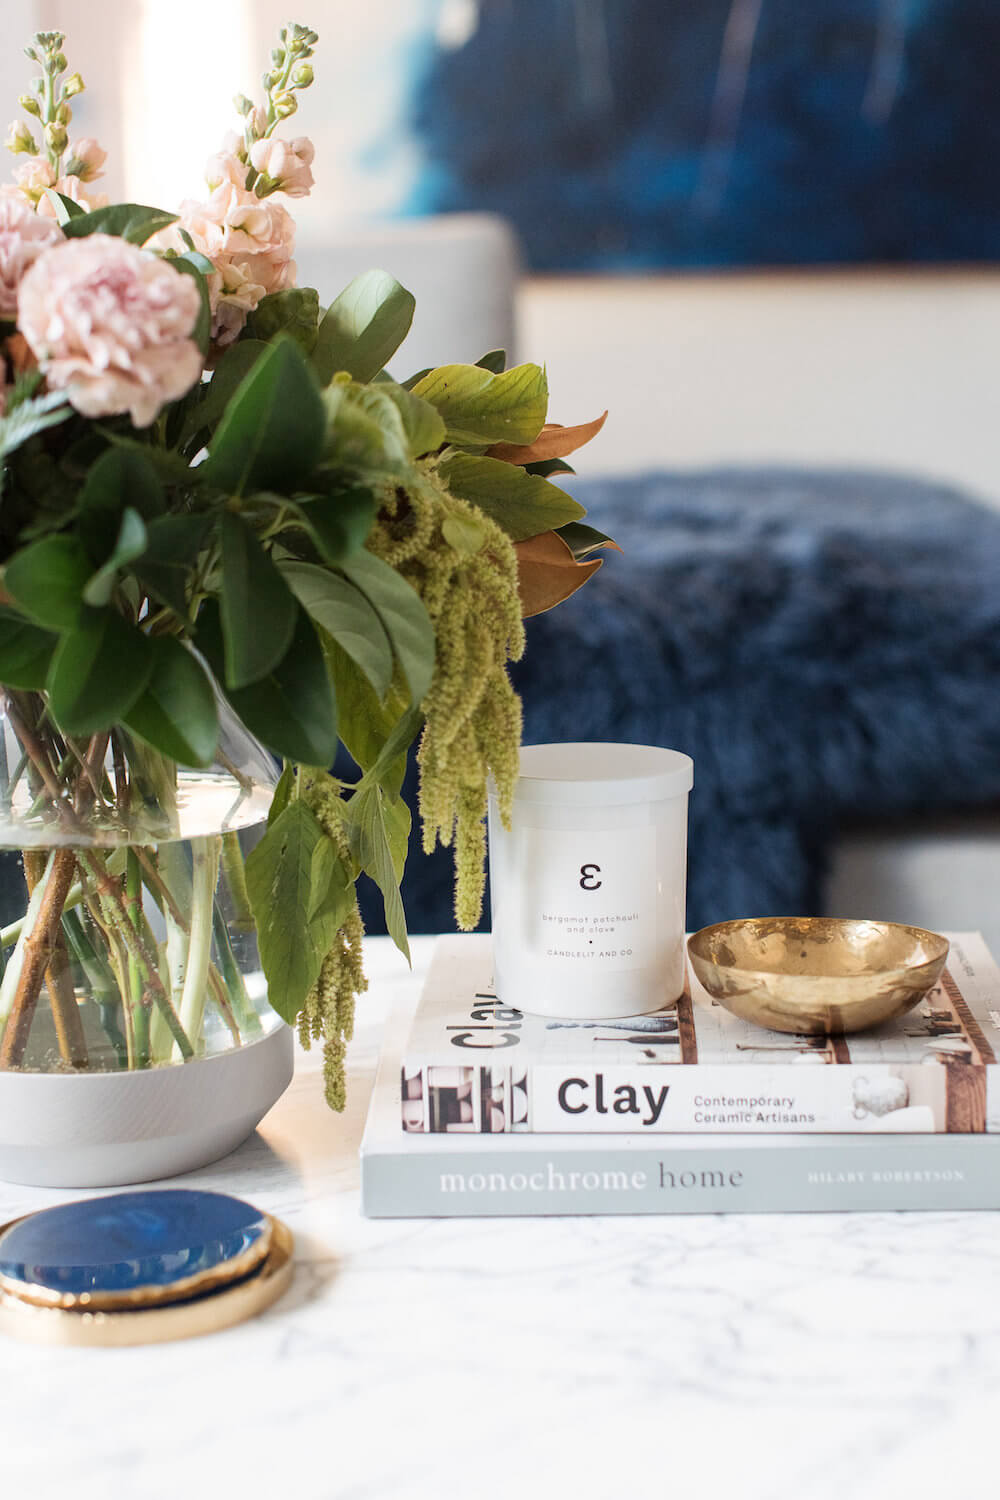 Quick Decorating Changes for Spring: Change your candles or diffusers to summery scents